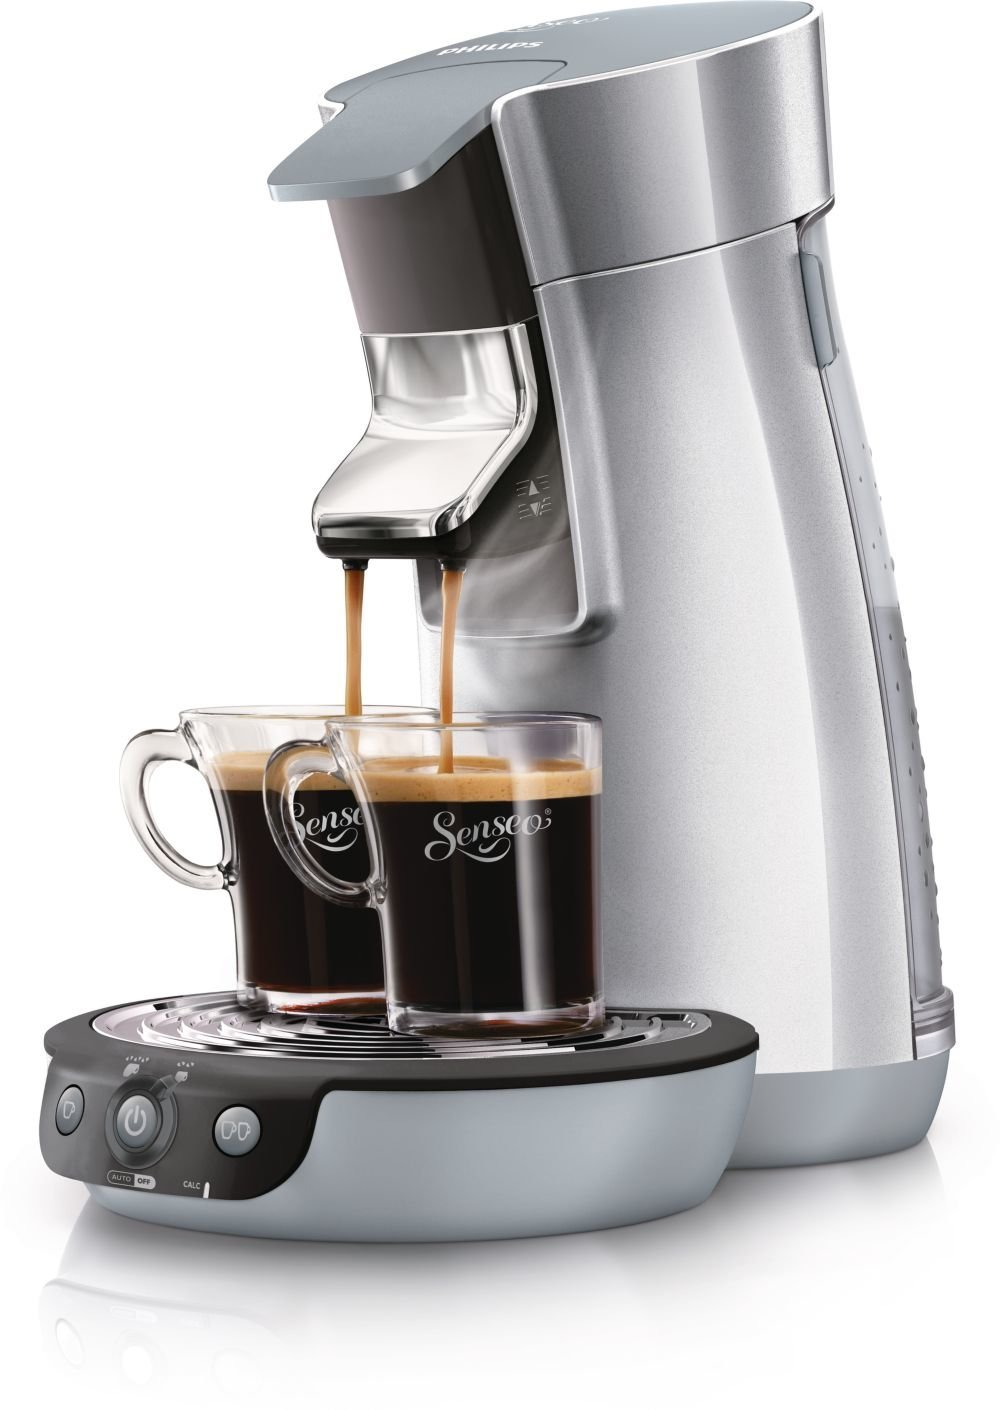 Senseo Kaffeemaschine Aktion : philips senseo r hd7828 50 viva caf in silber online ~ Watch28wear.com Haus und Dekorationen